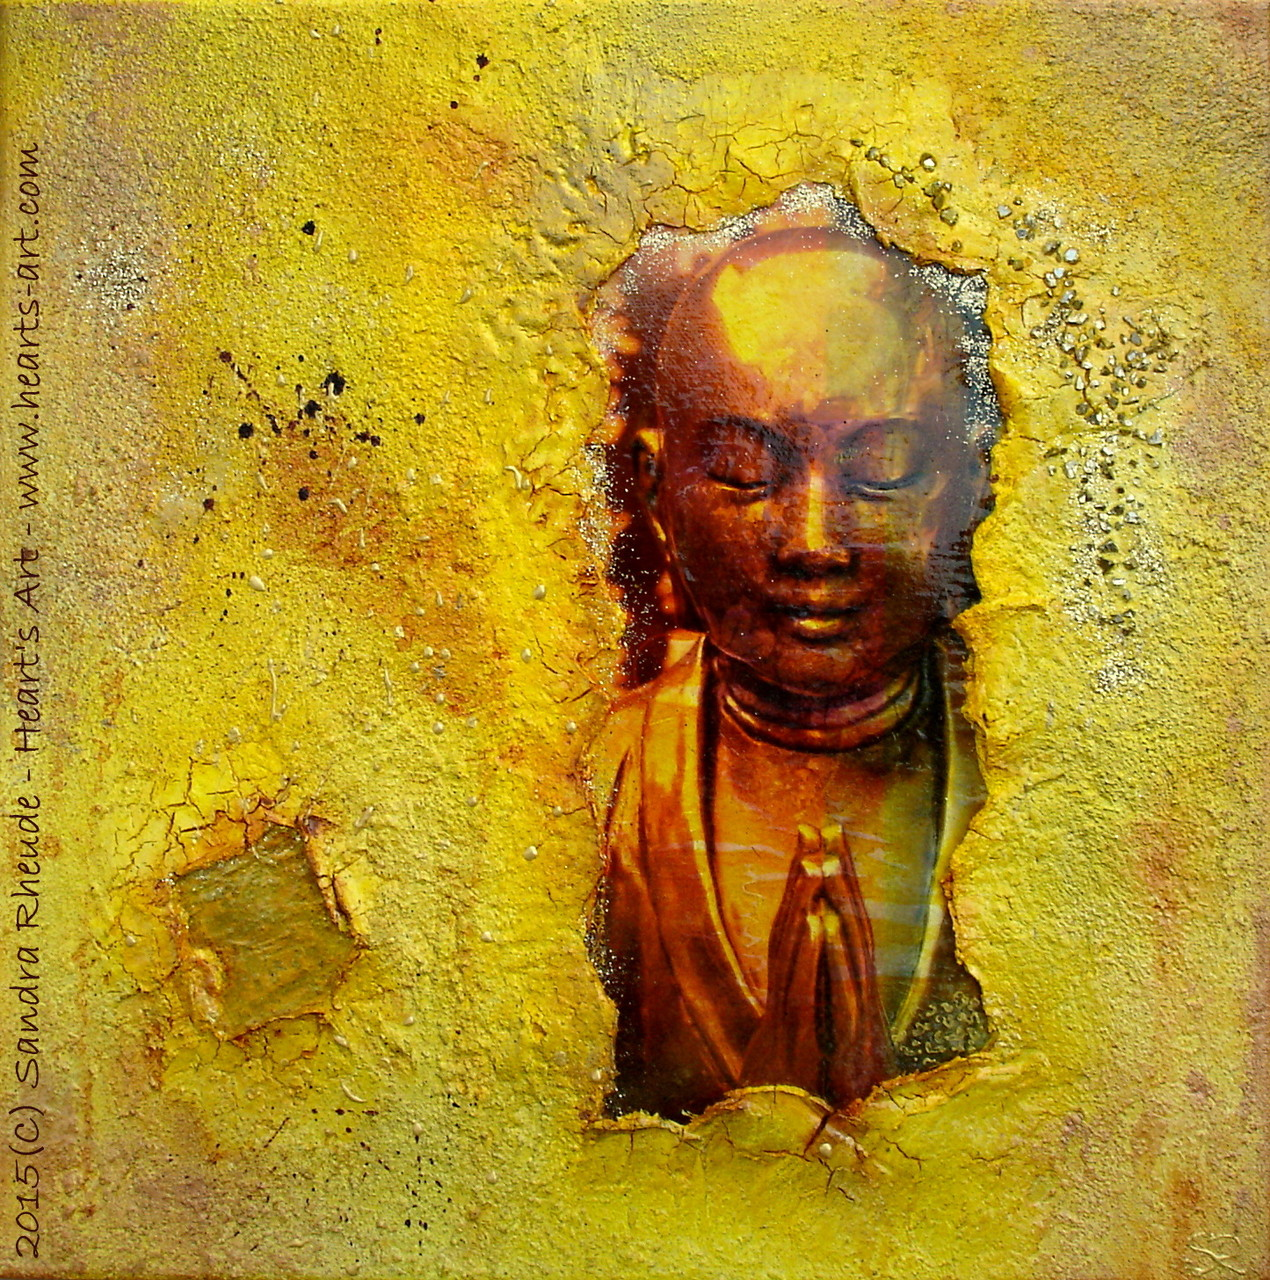 'Buddha's little Secret' - 2015/16 - Acryl/MixedMedia auf Leinwand - 40 x 40 cm - € 170